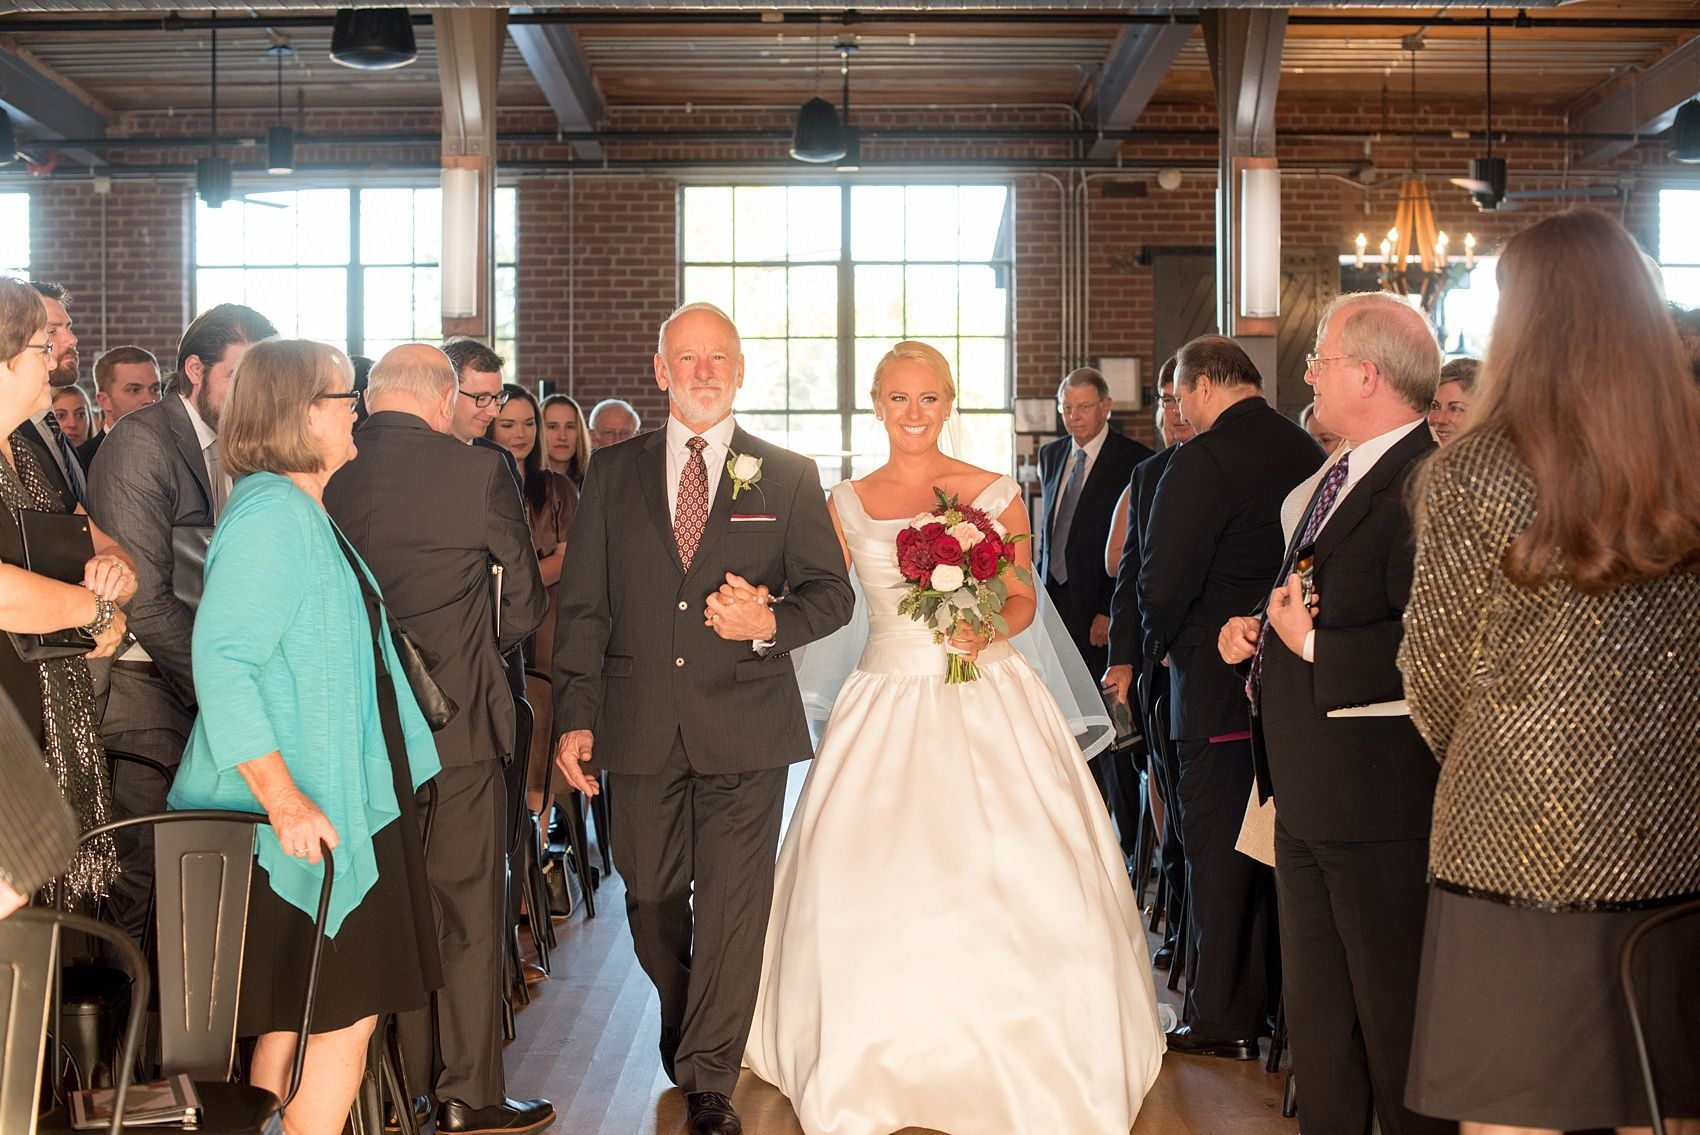 Mikkel Paige Photography photo of a wedding at The Rickhouse, Durham. A picture of the bride and her father walking down the aisle.